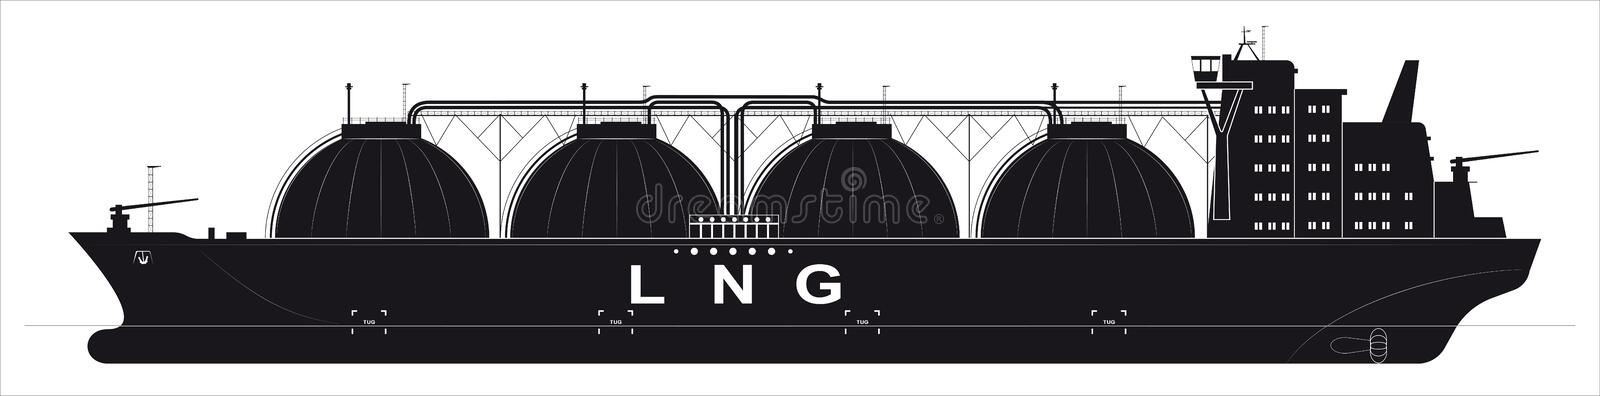 Black silhouette of a huge ocean tanker for liquefied gas. Traced details. Side view. Black silhouette of a huge ocean tanker for liquefied gas. Traced details stock illustration